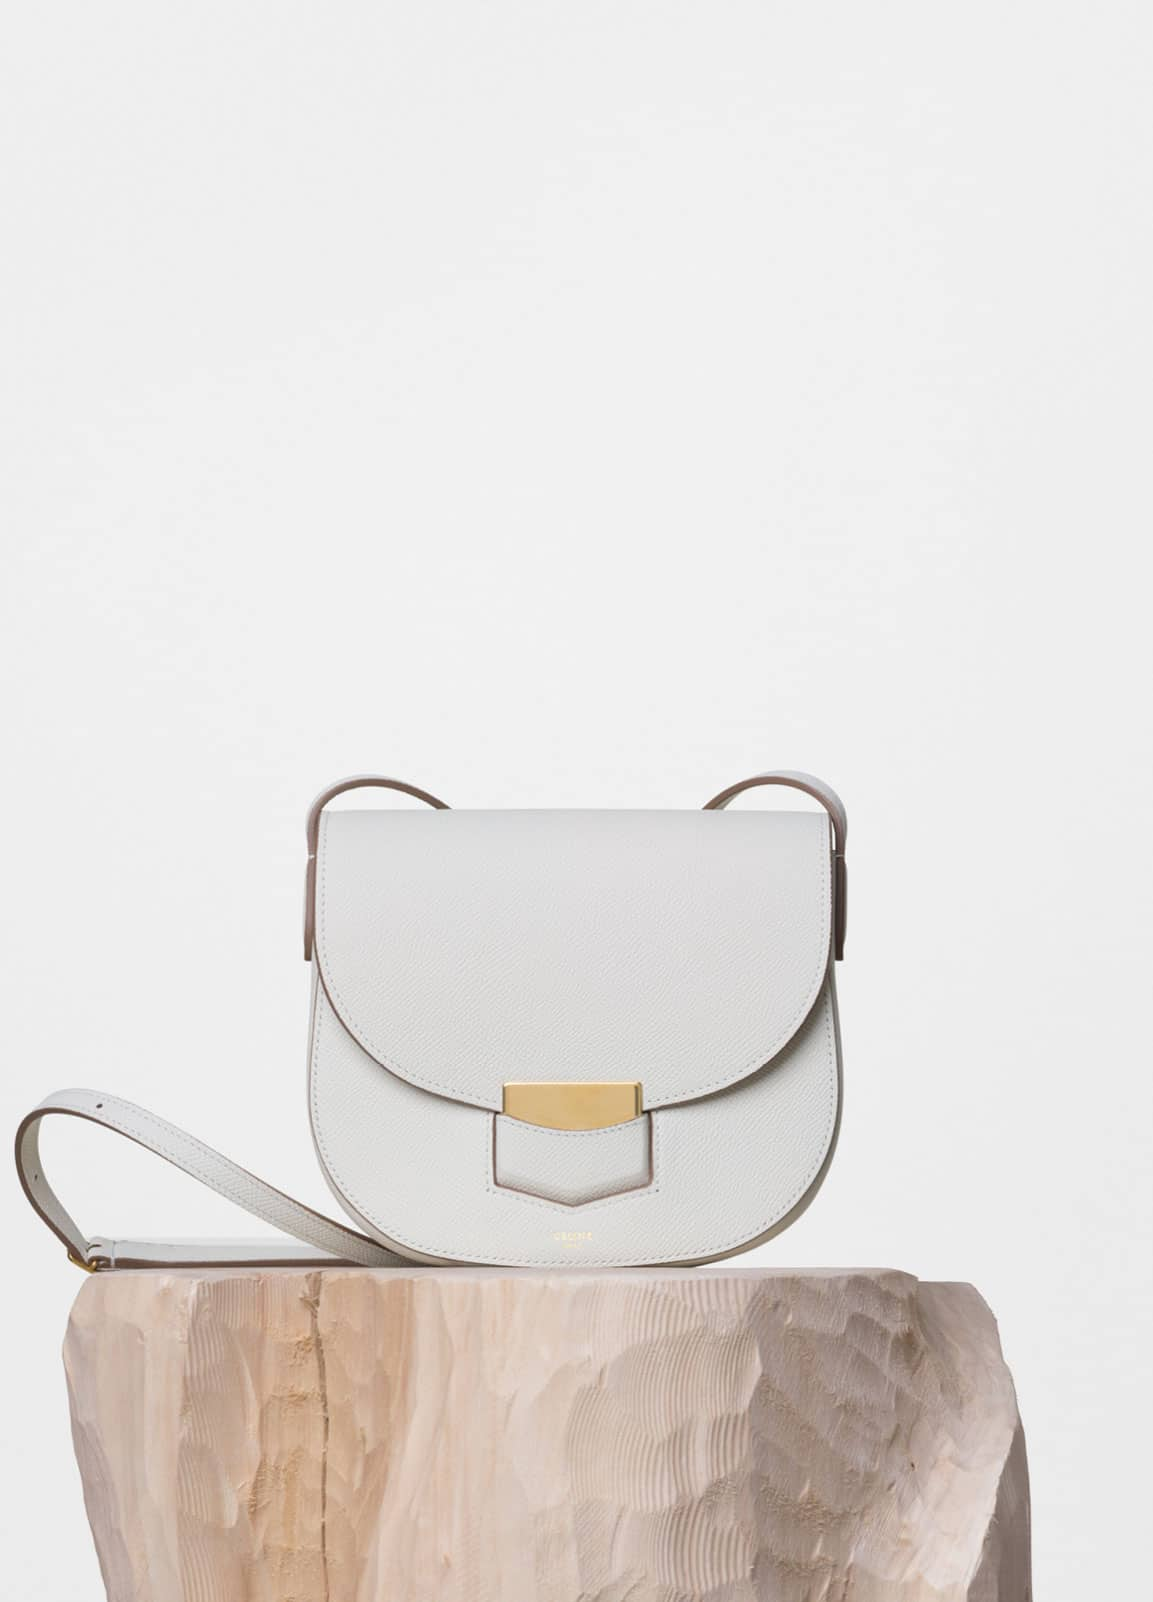 Celine Summer 2016 Bag Collection Featuring Pillow Bags – Page 2 ...